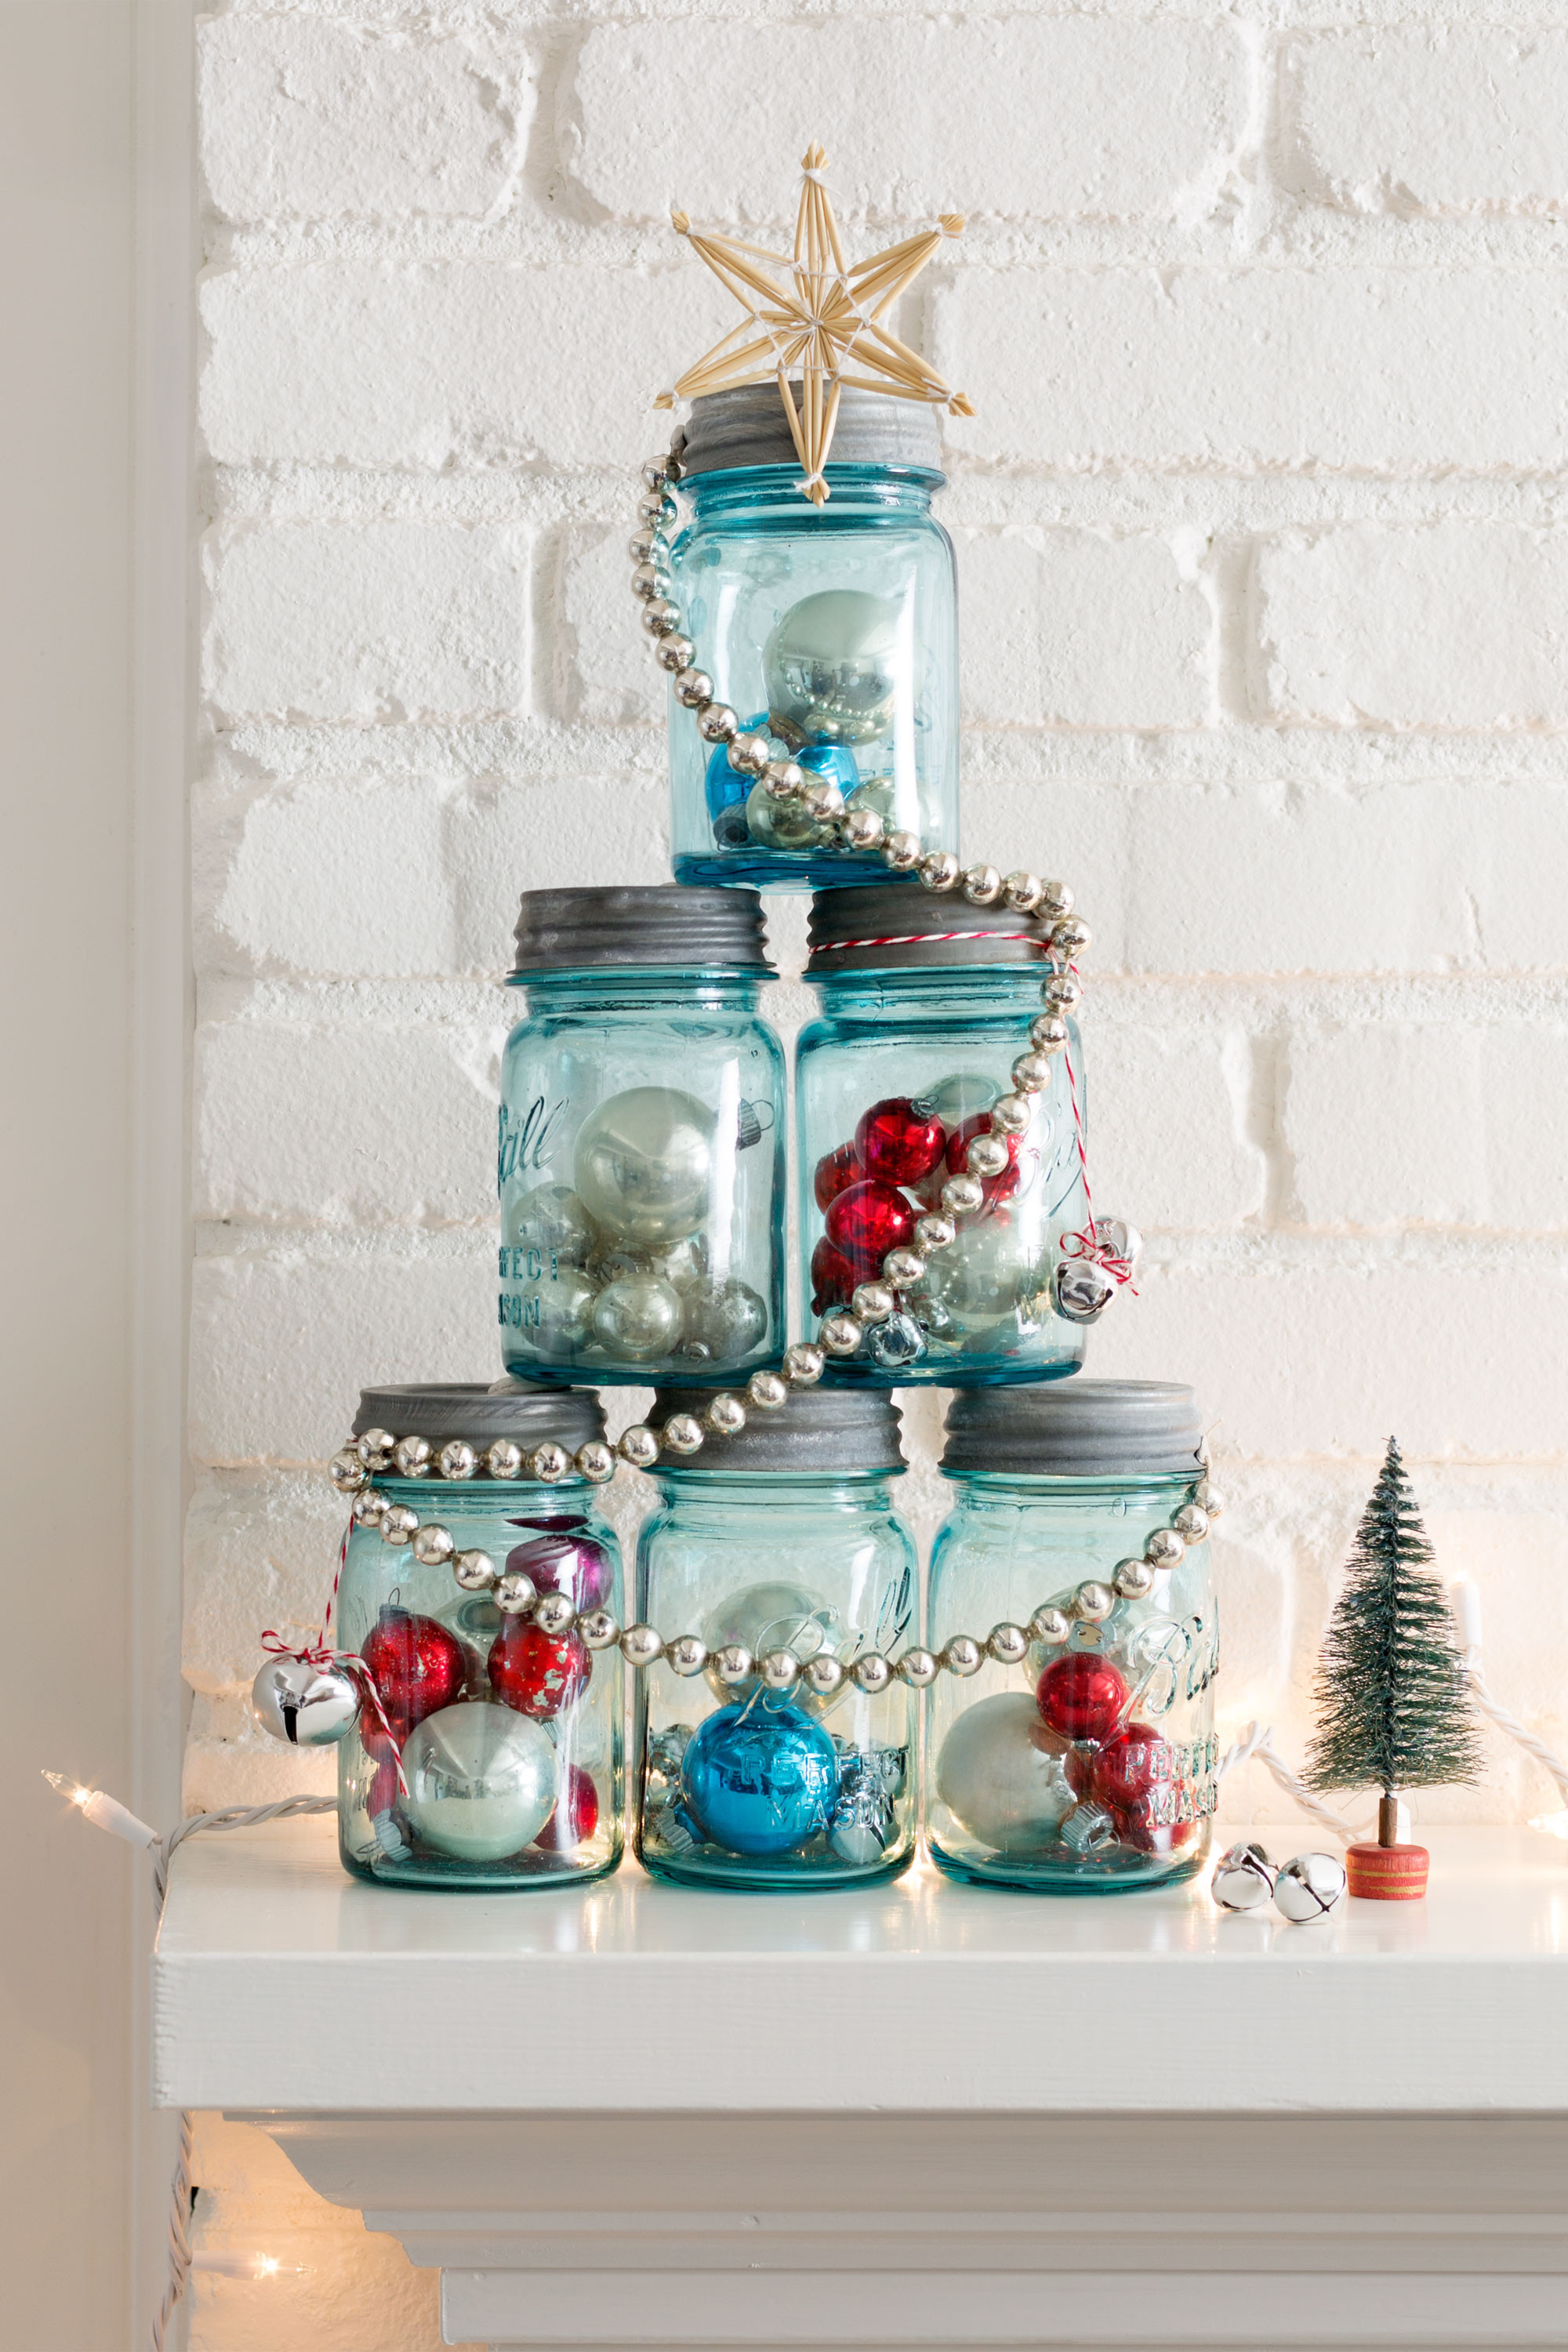 Best ideas about DIY Christmas Ideas . Save or Pin 37 DIY Homemade Christmas Decorations Christmas Decor Now.